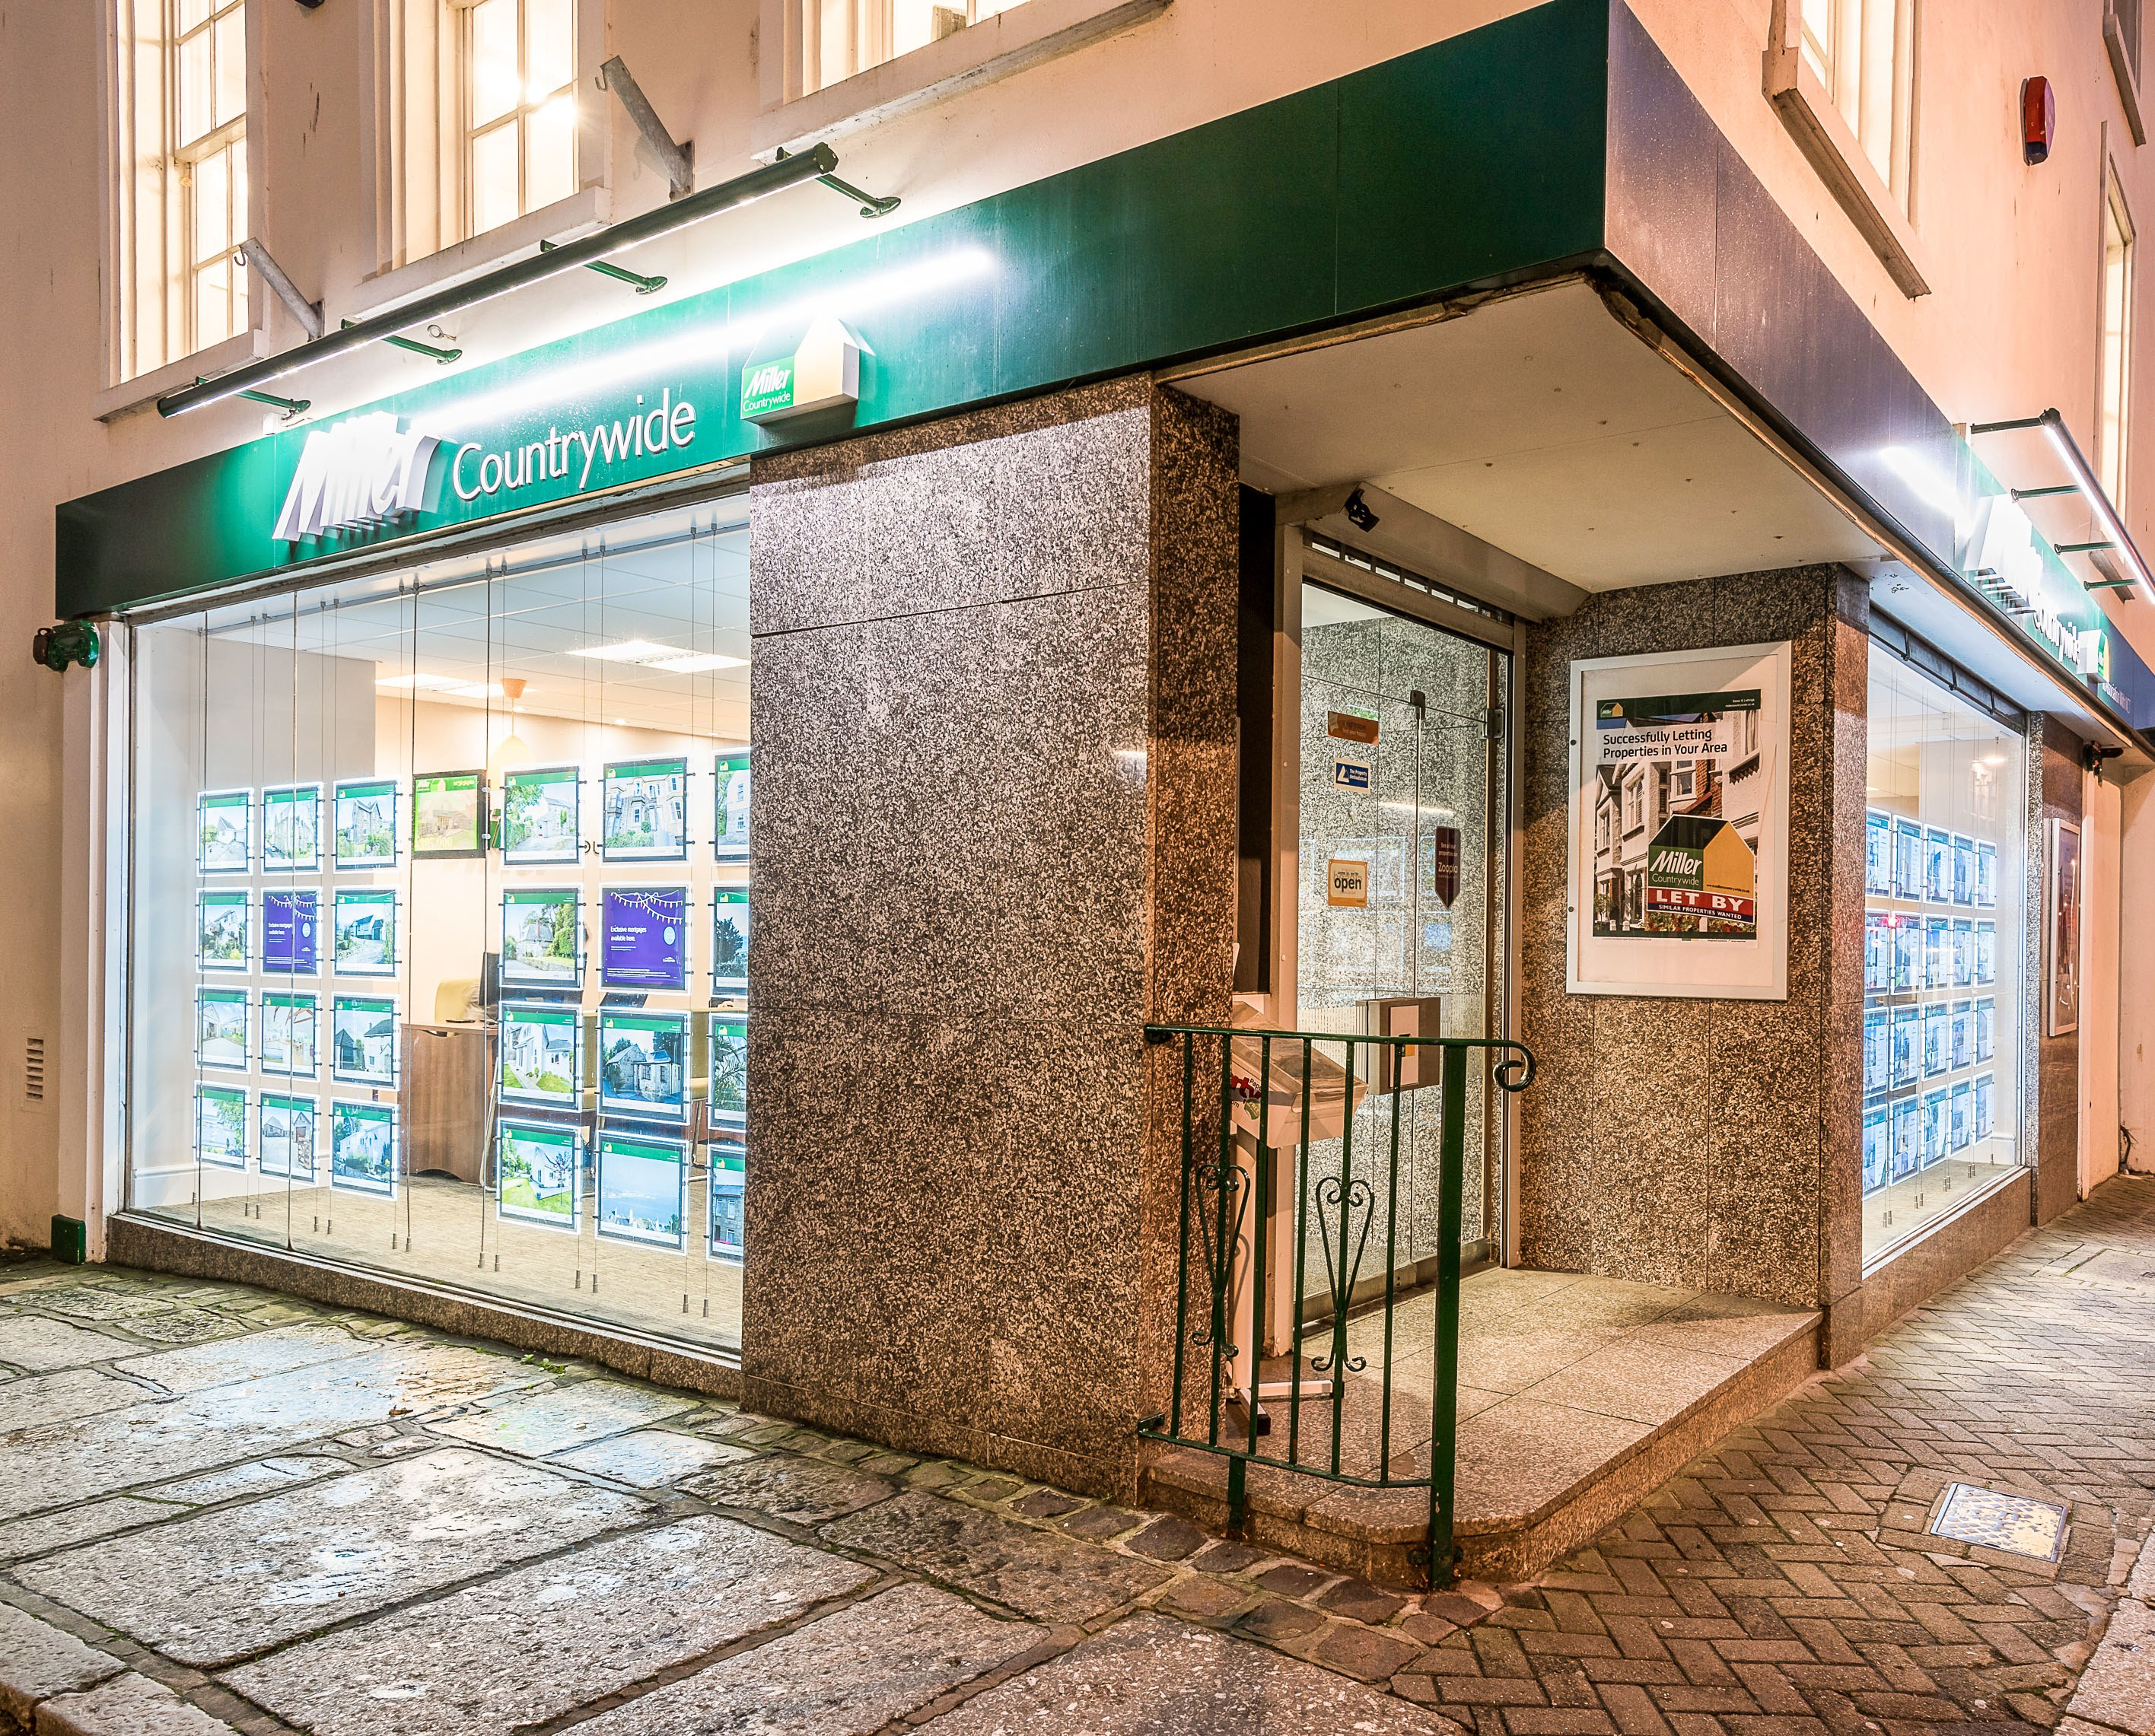 Miller Countrywide Estate and Letting Agents Penzance